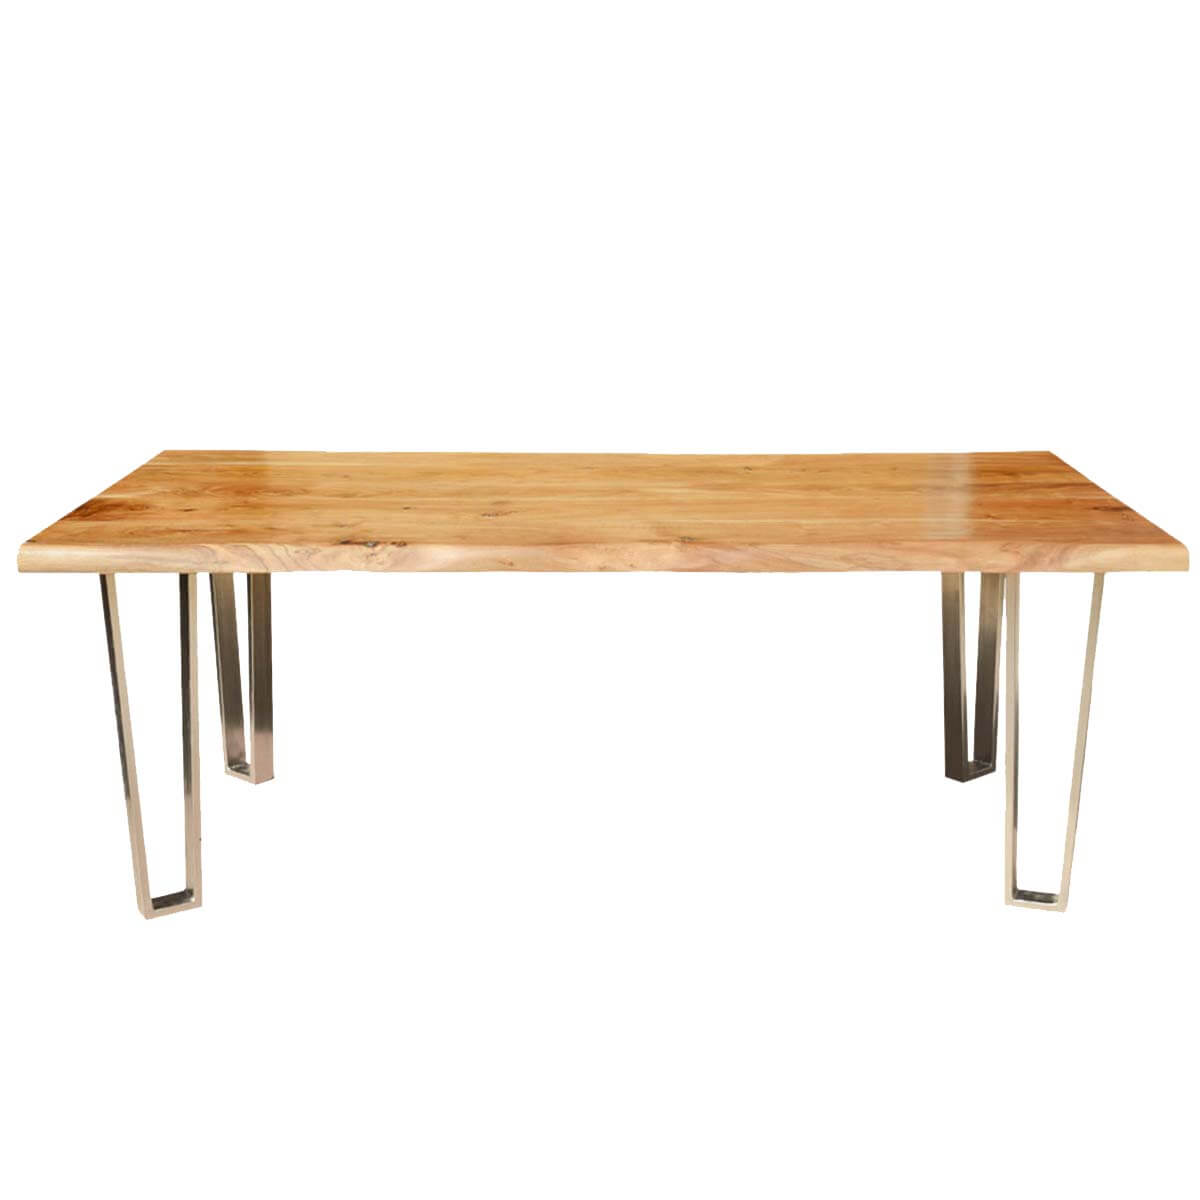 Solid wood iron rustic live edge dining table for Solid wood dining table